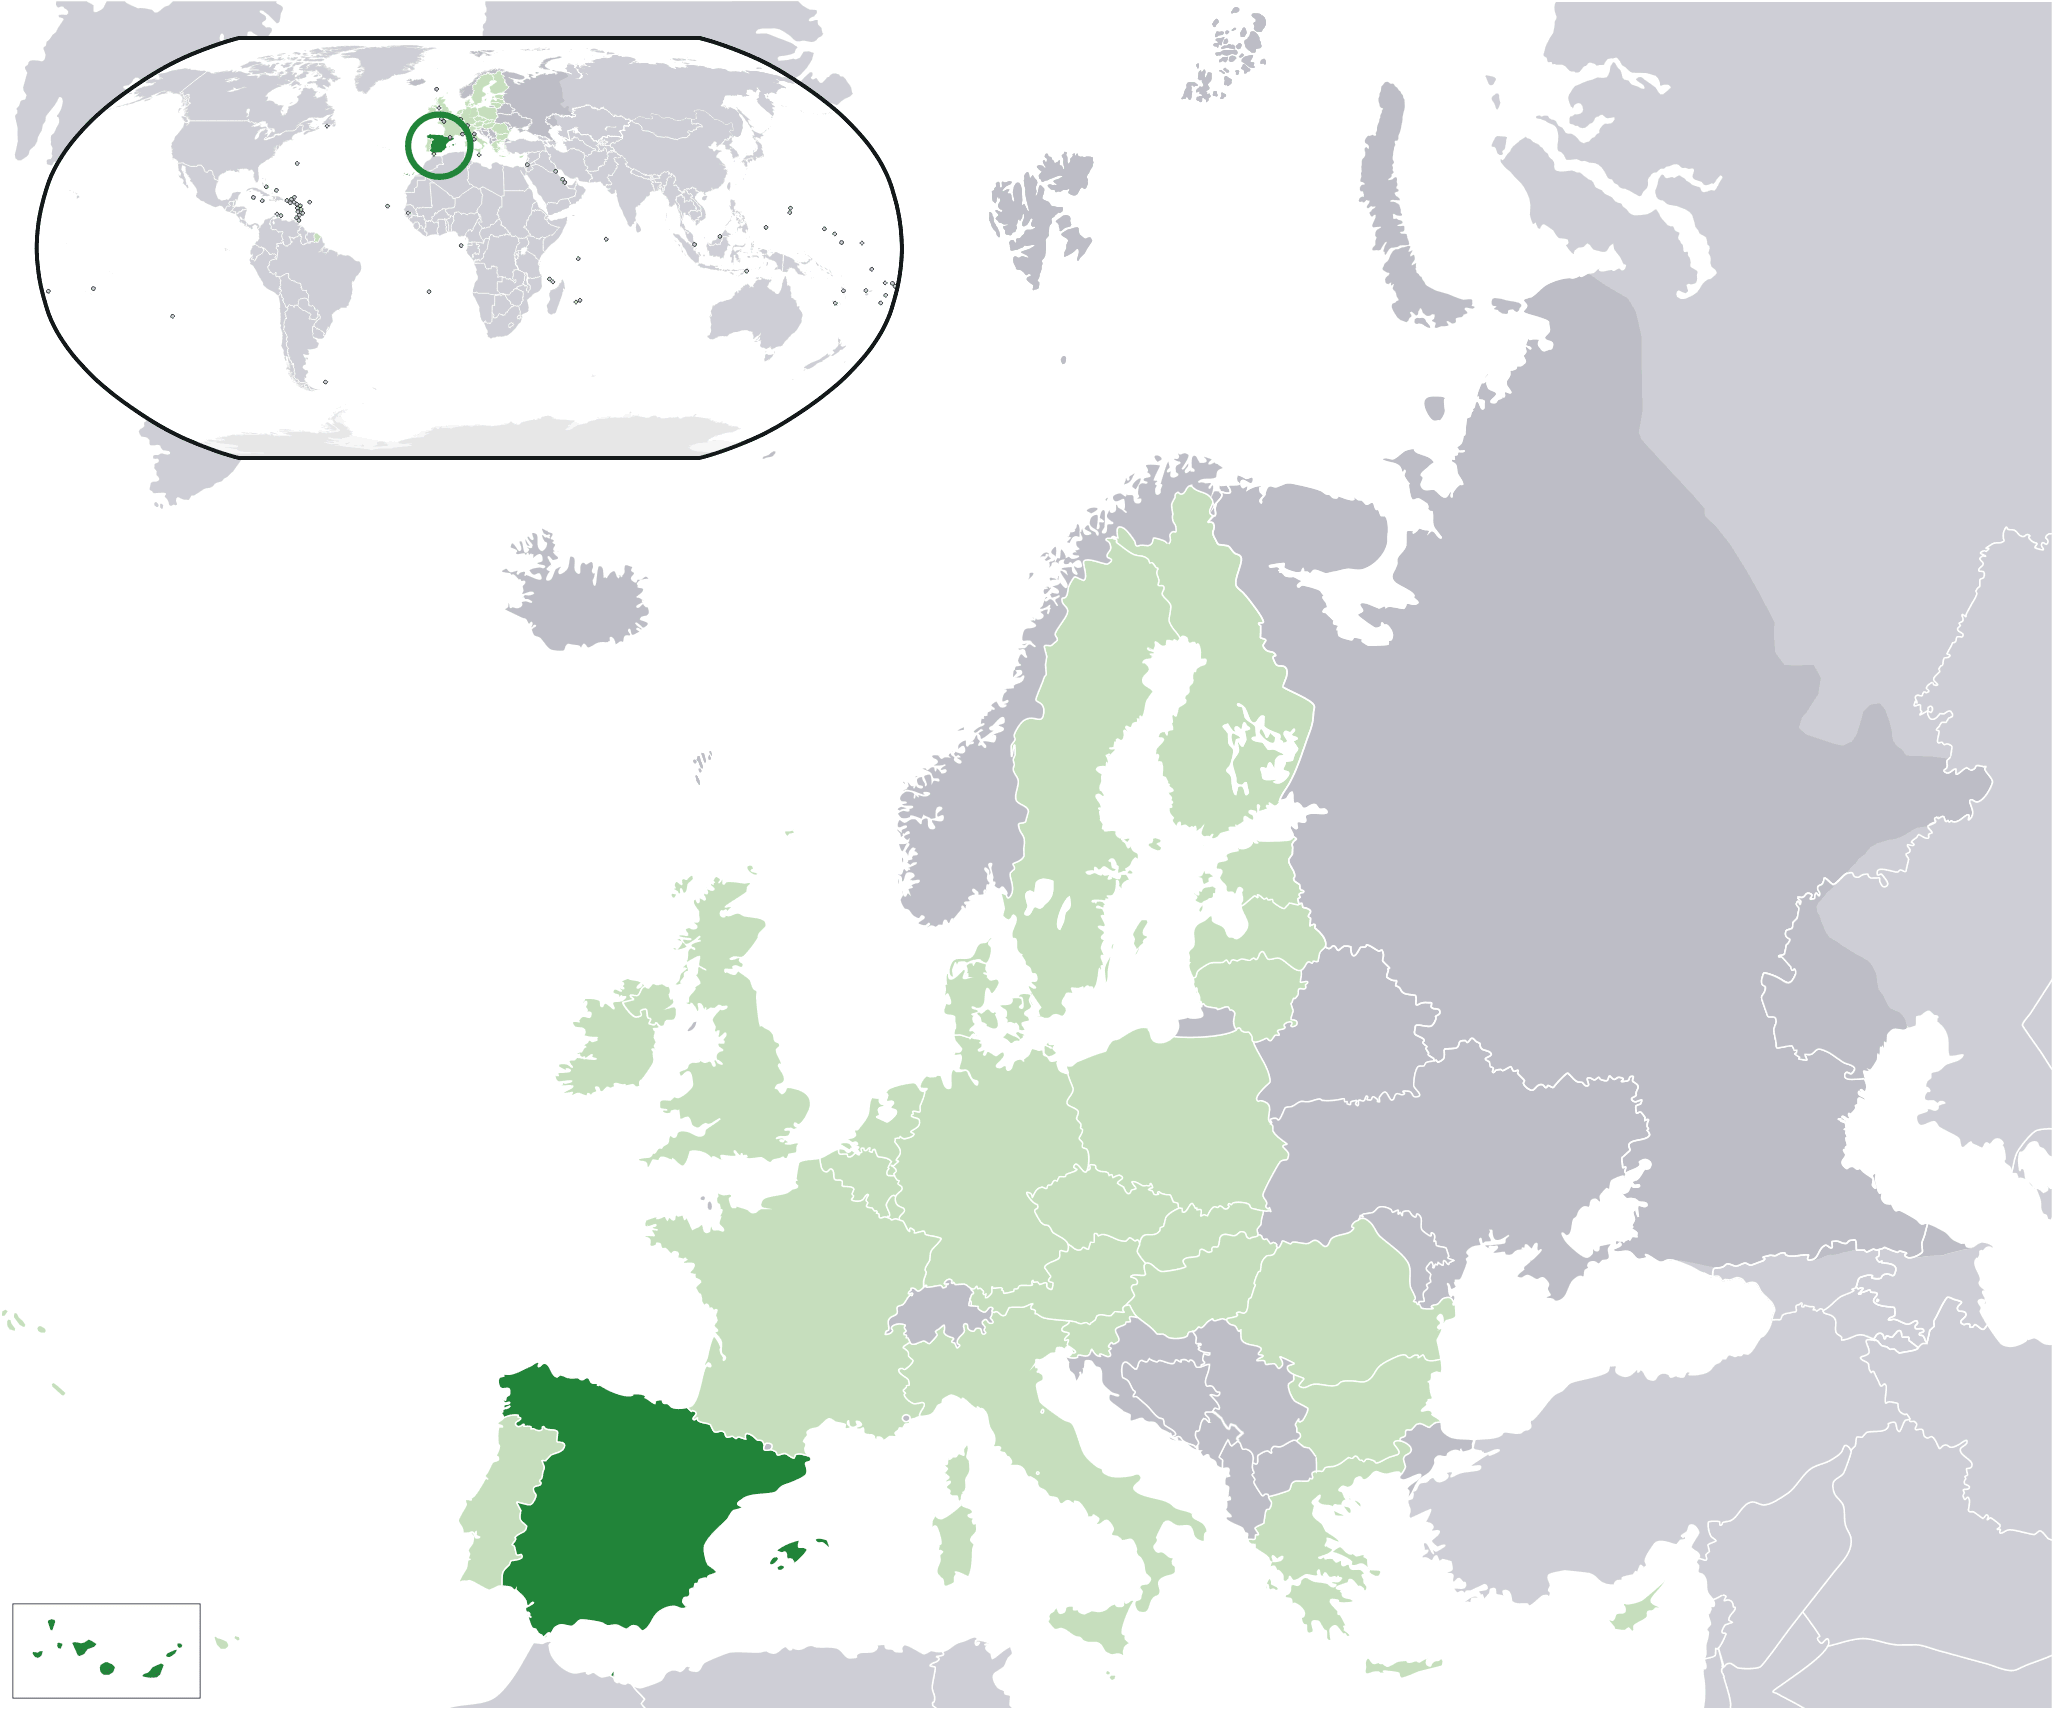 Map Of Spain And Europe.Location Spain Eu Europe Mapsof Net